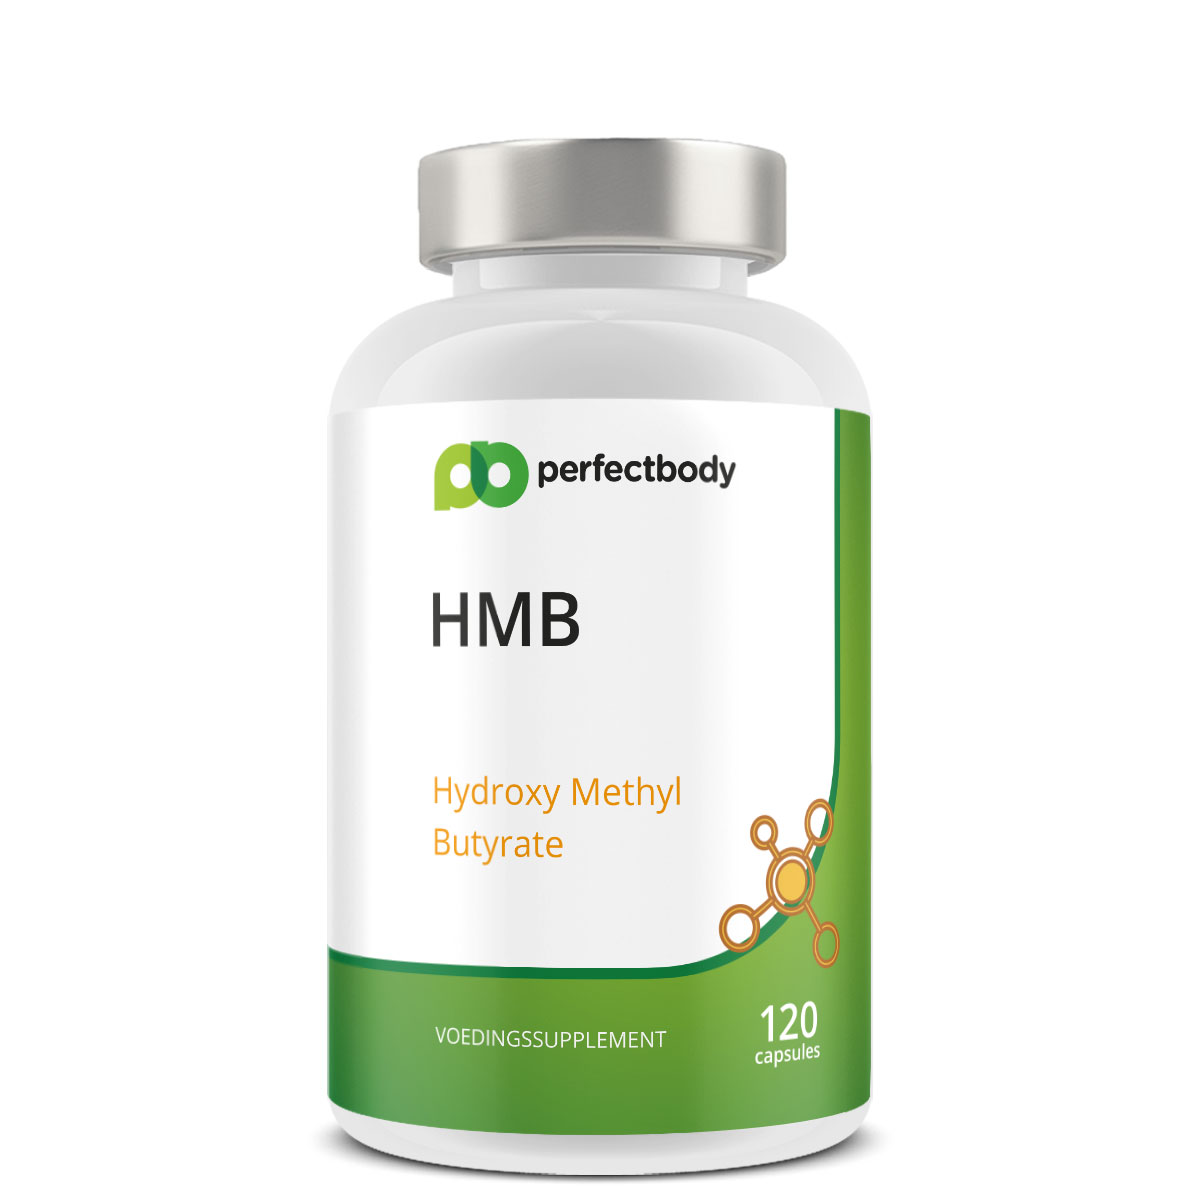 Perfectbody HMB Supplement - 120 Capsules